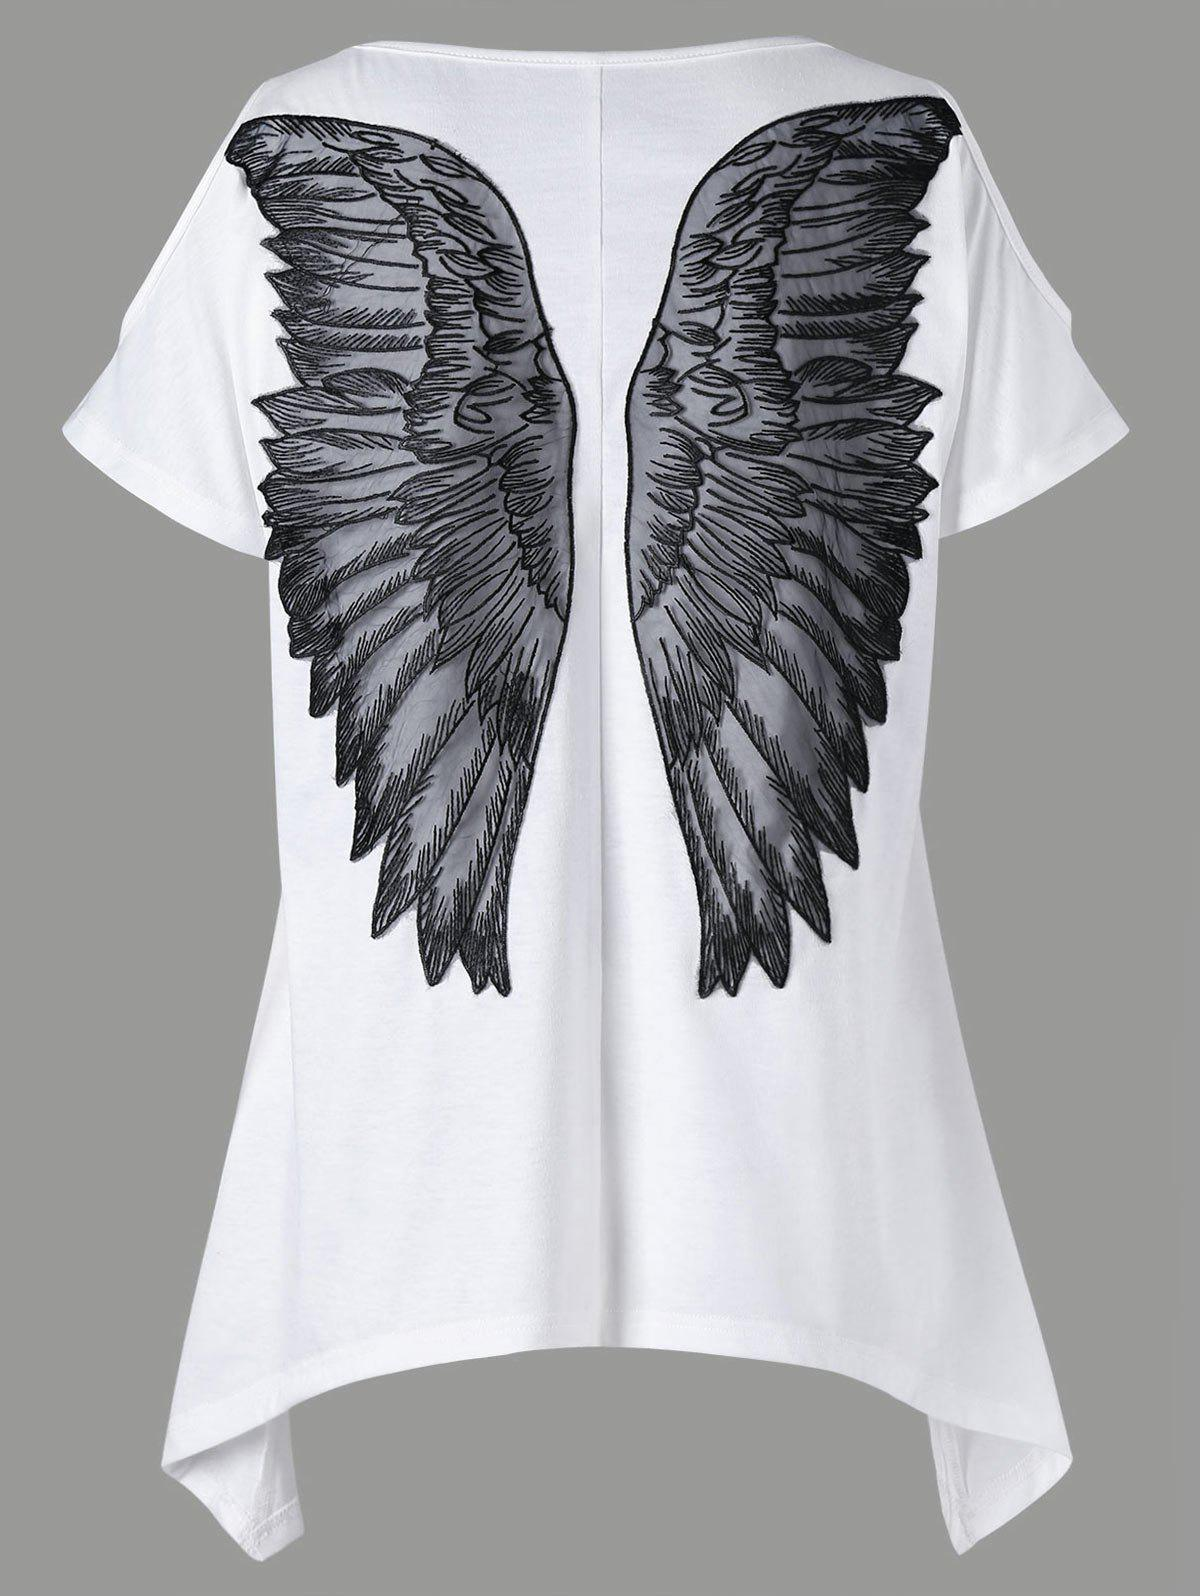 Cold Shoulder Appliqued Wings T-shirtWOMEN<br><br>Size: L; Color: WHITE; Material: Polyester,Spandex; Shirt Length: Regular; Sleeve Length: Short; Collar: Round Neck; Style: Fashion; Season: Summer; Pattern Type: Wings; Weight: 0.2400kg; Package Contents: 1 x T-shirt;